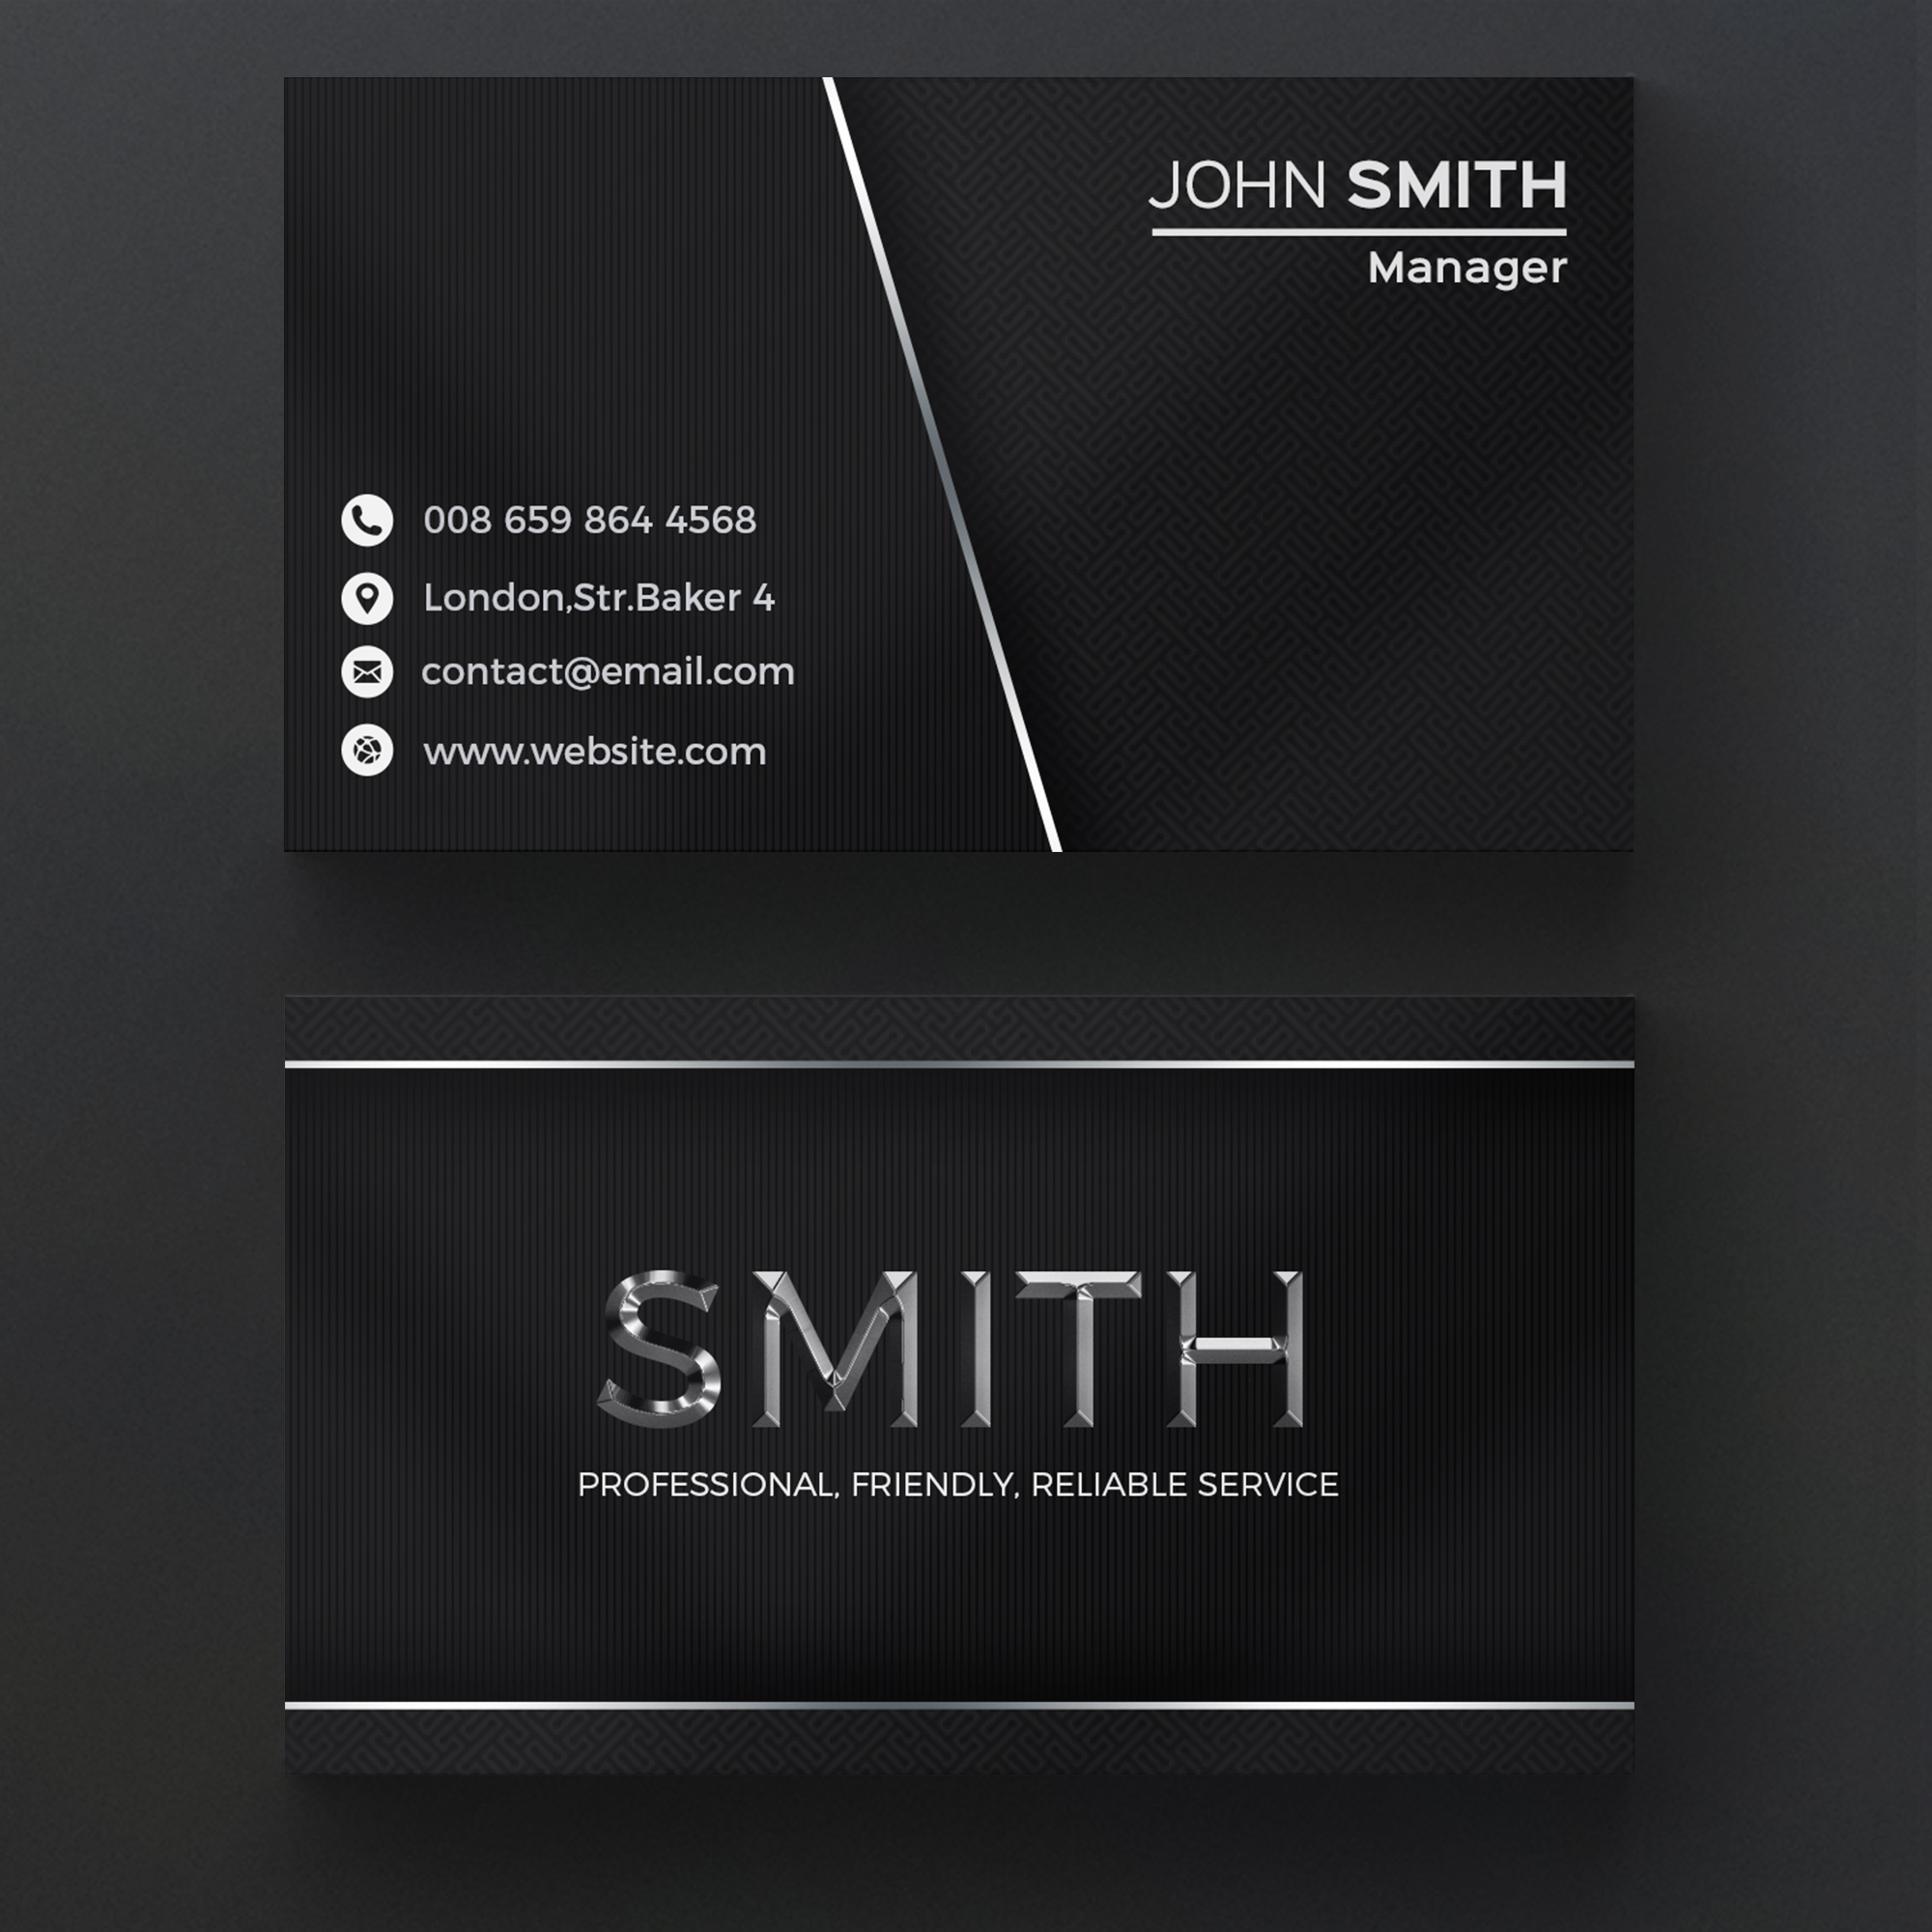 Dark metallic business card